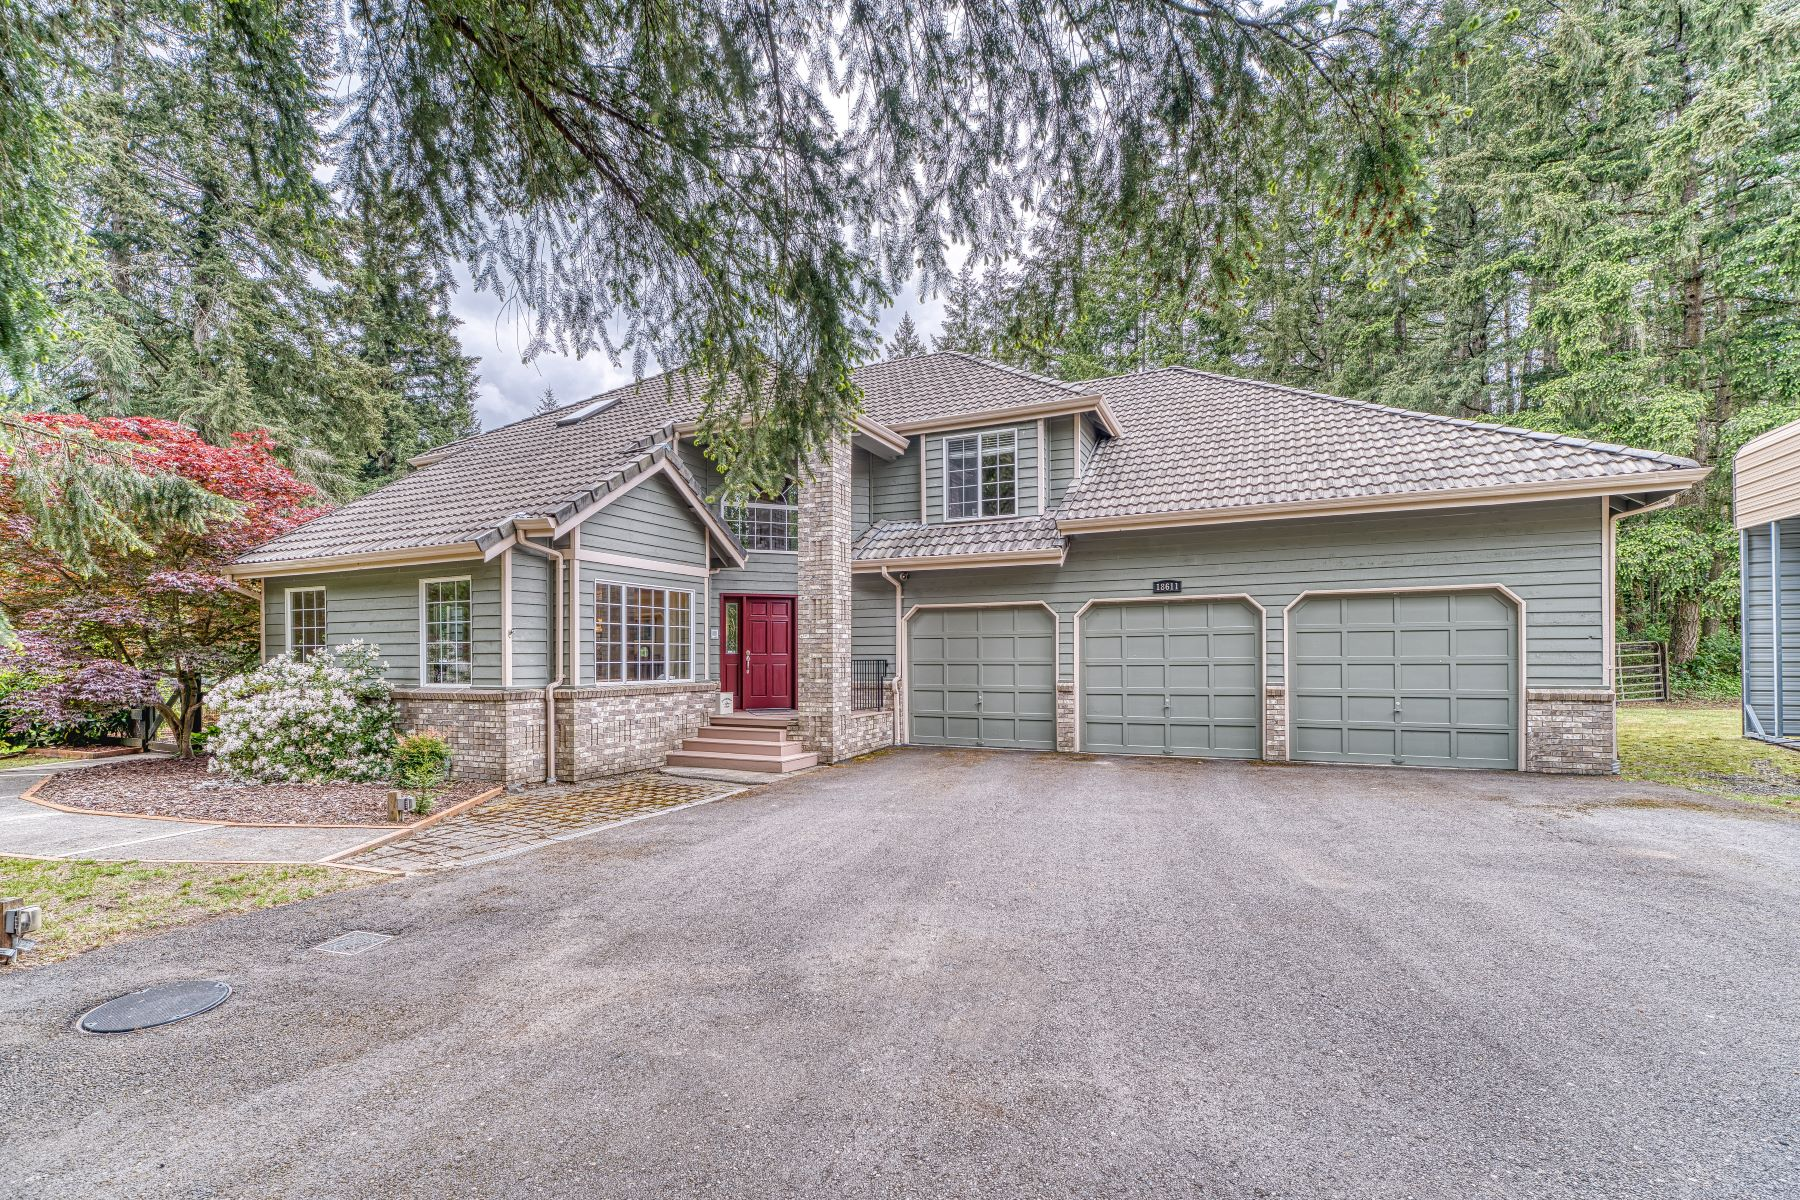 Single Family Homes for Sale at Private & Serene Cultivated Acreage 18611 SE 307th Lane, Kent, Washington 98042 United States